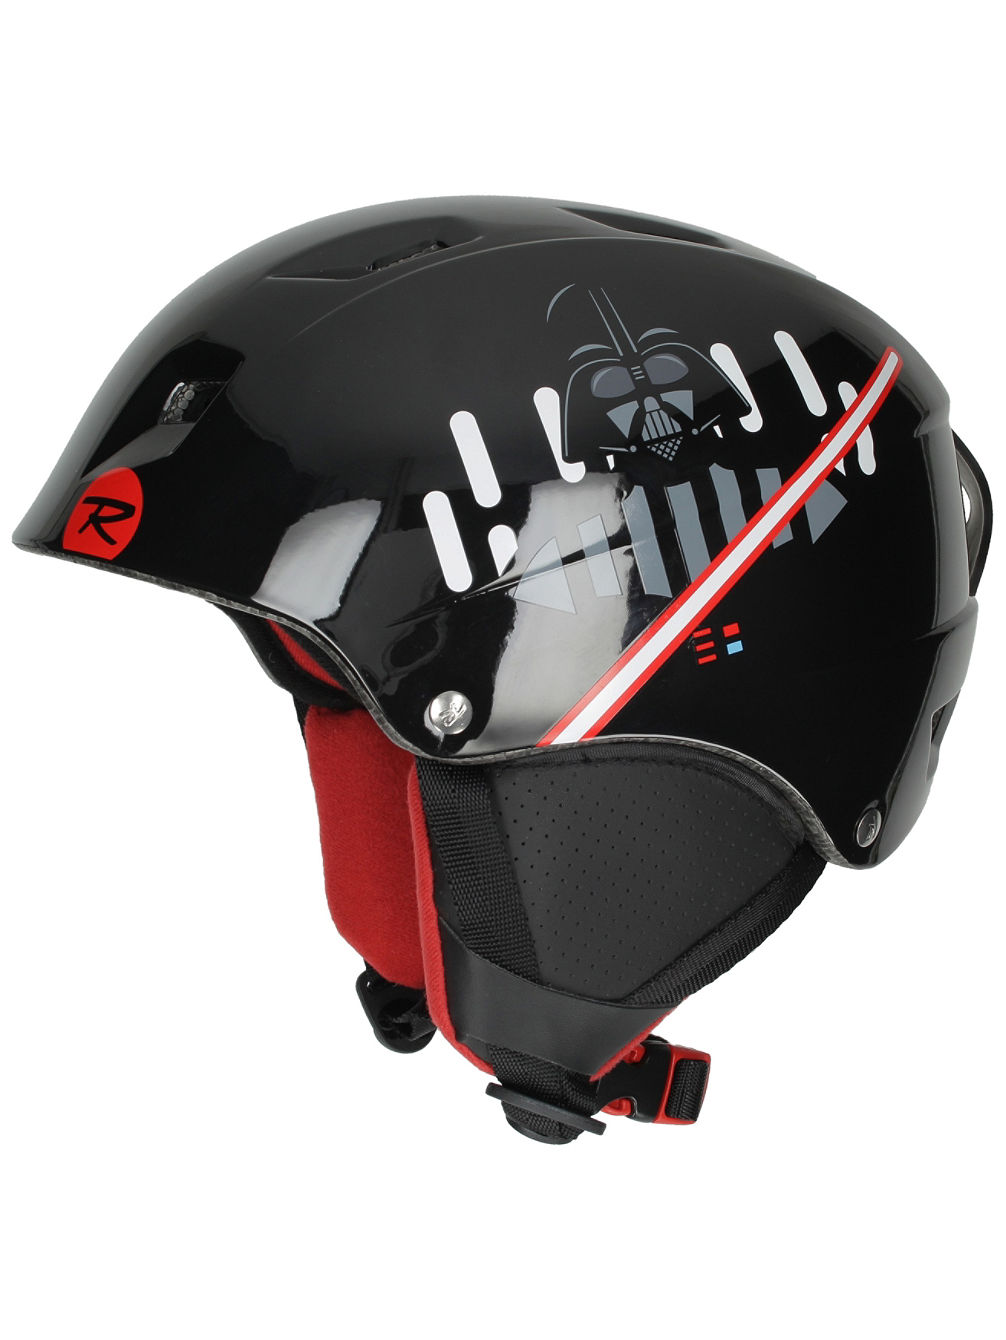 Comp Jr Star Wars Snowboard Helmet Youth You